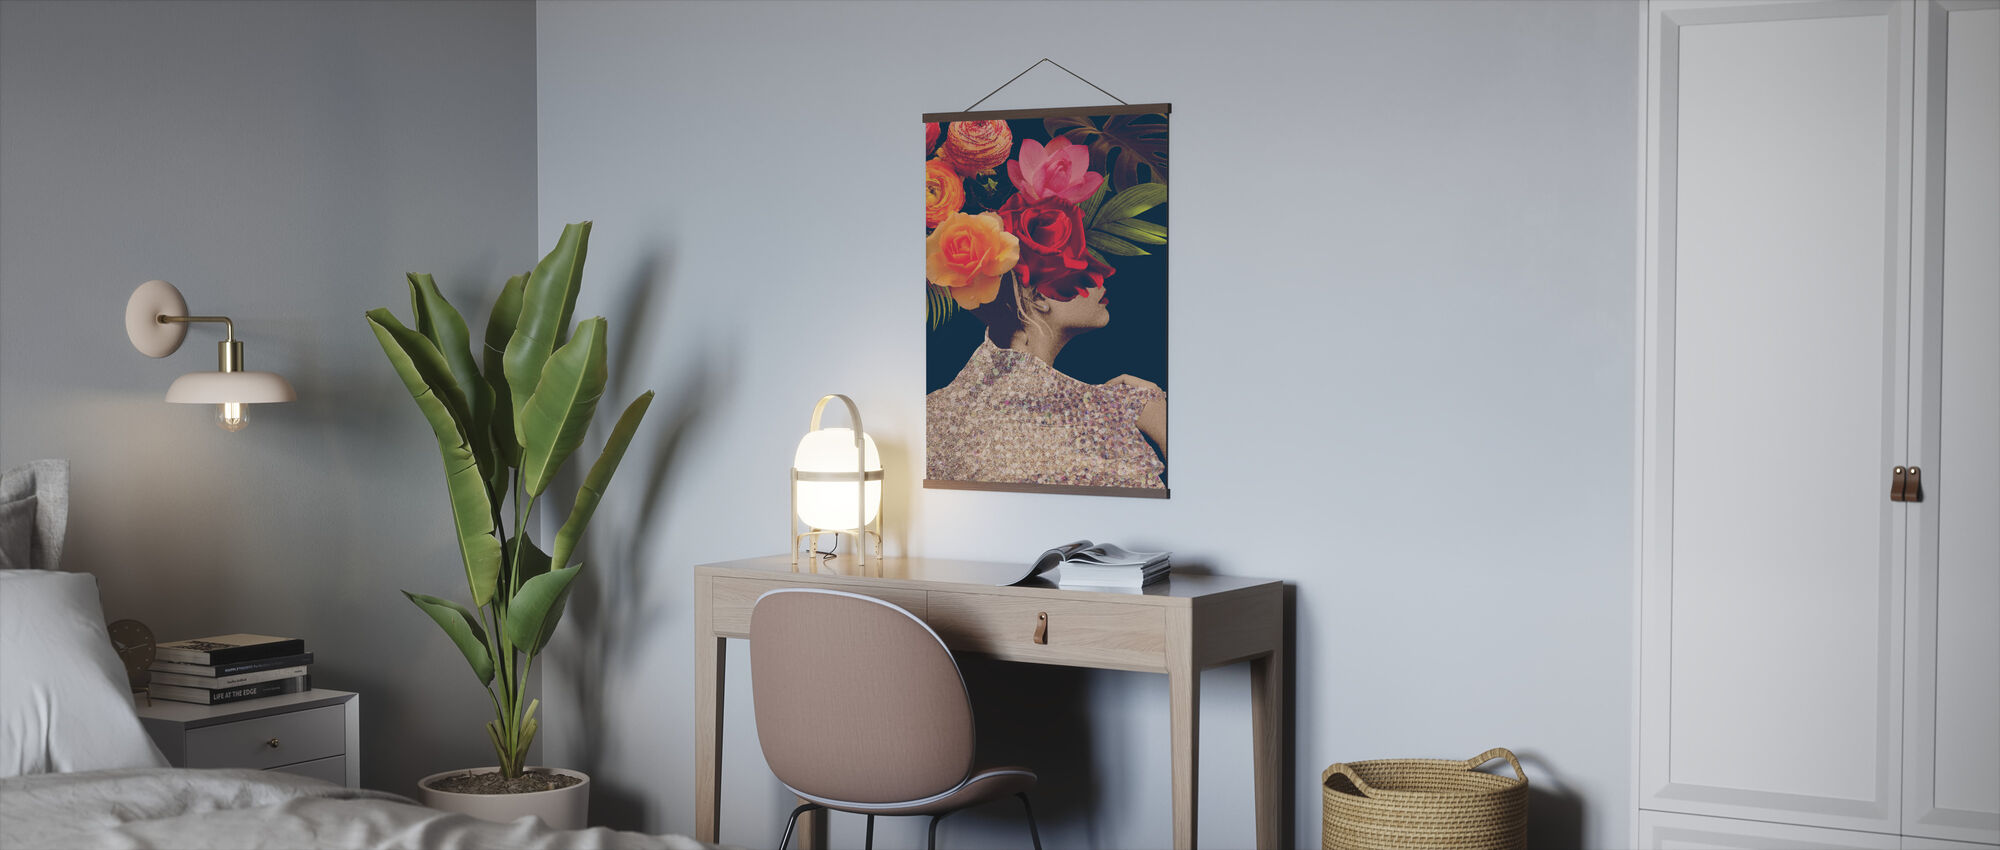 Fleur Collage - Poster - Office